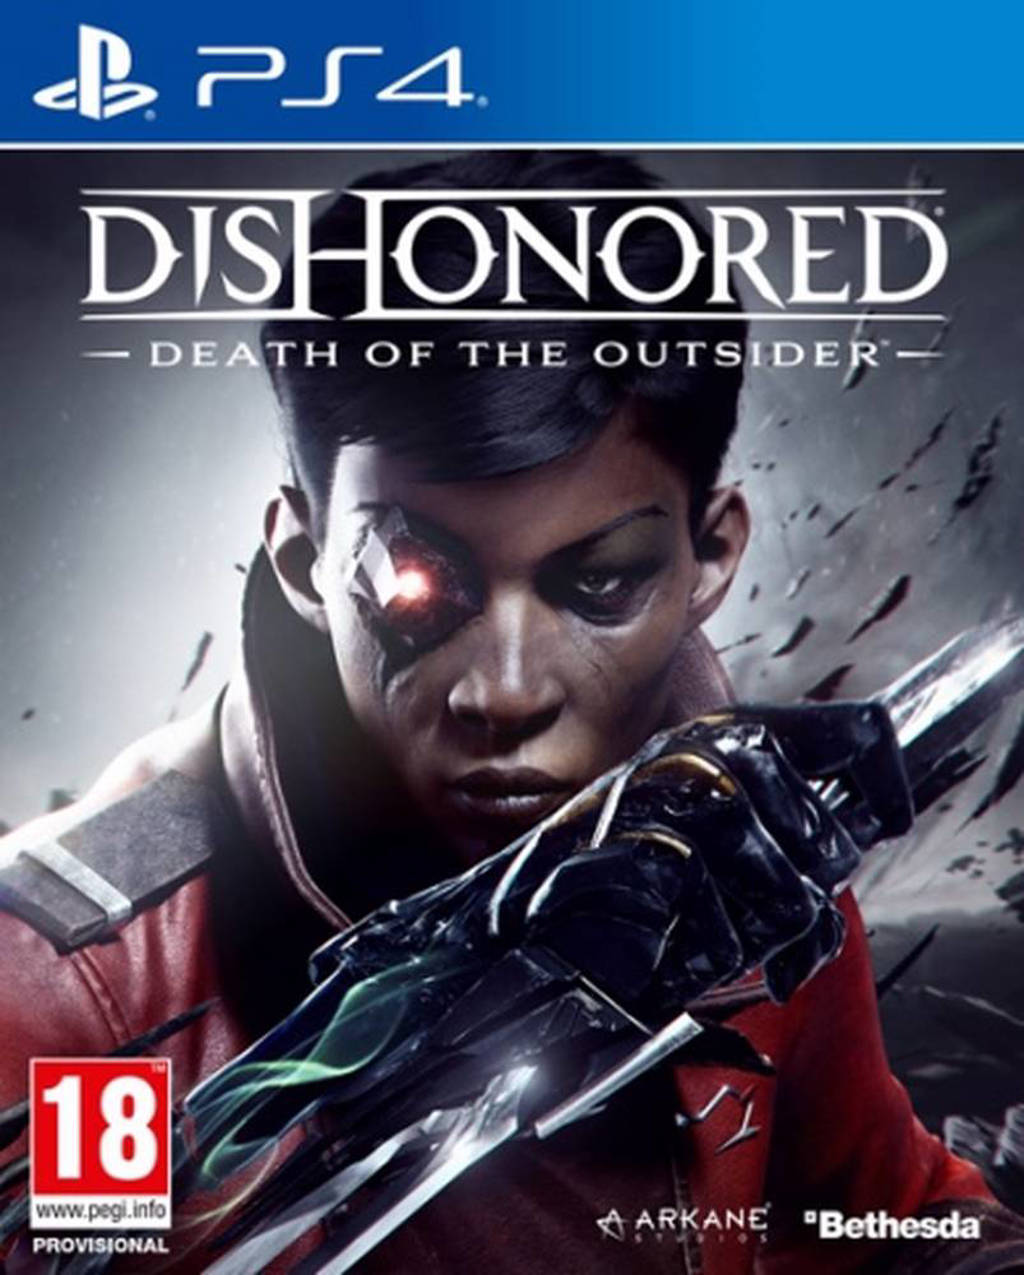 Dishonored - Death of the outsider (PlayStation 4)